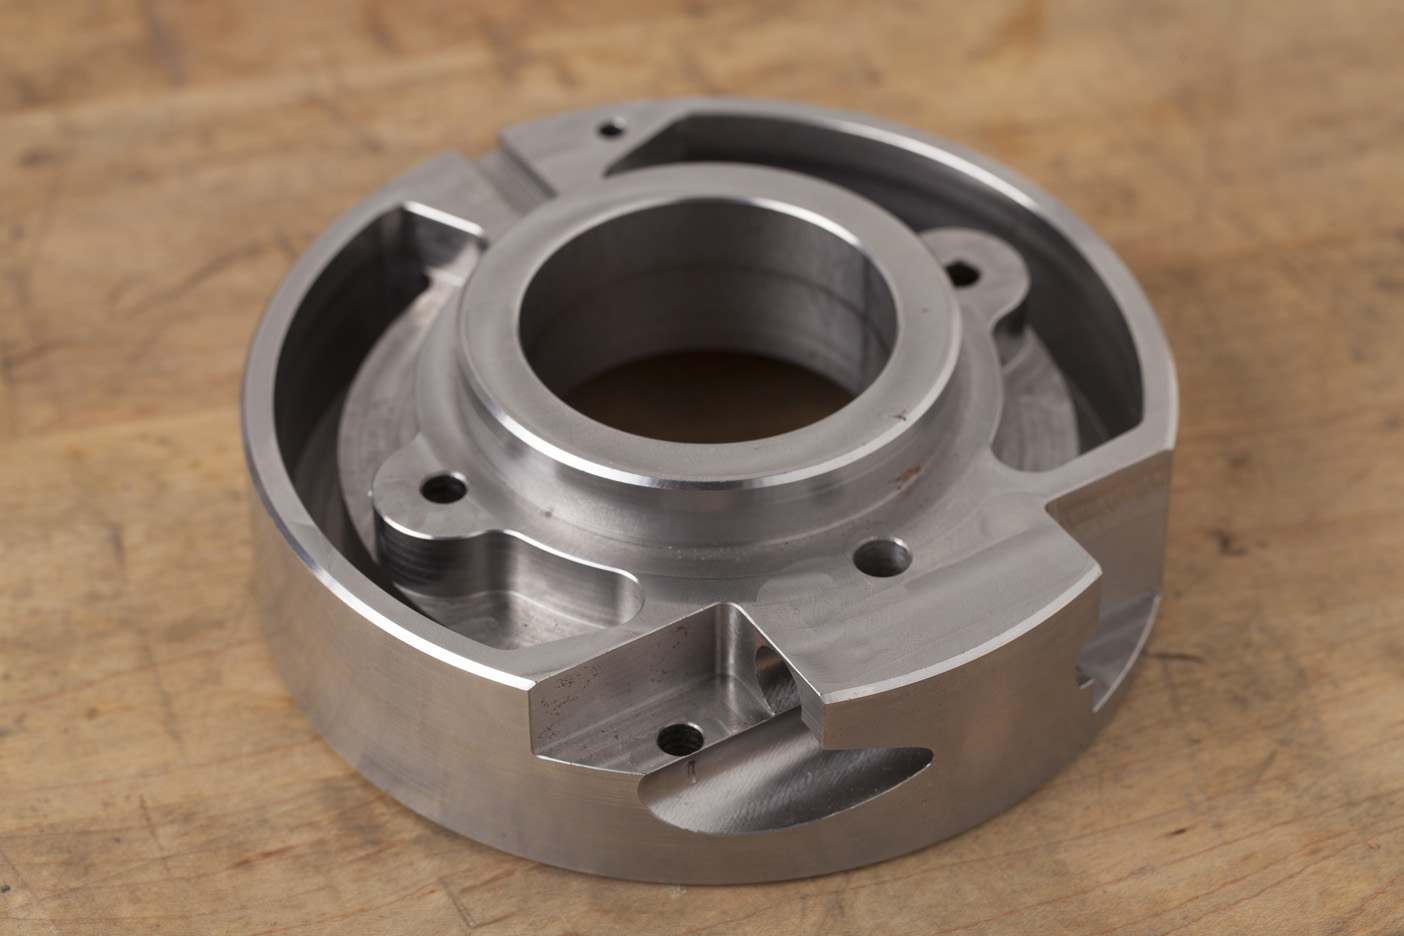 Automation Equipment, Automotive, A2 Tool Steel, PS95 CNC Milled in multiple setups, Long relief cutters to cut pockets, low volume